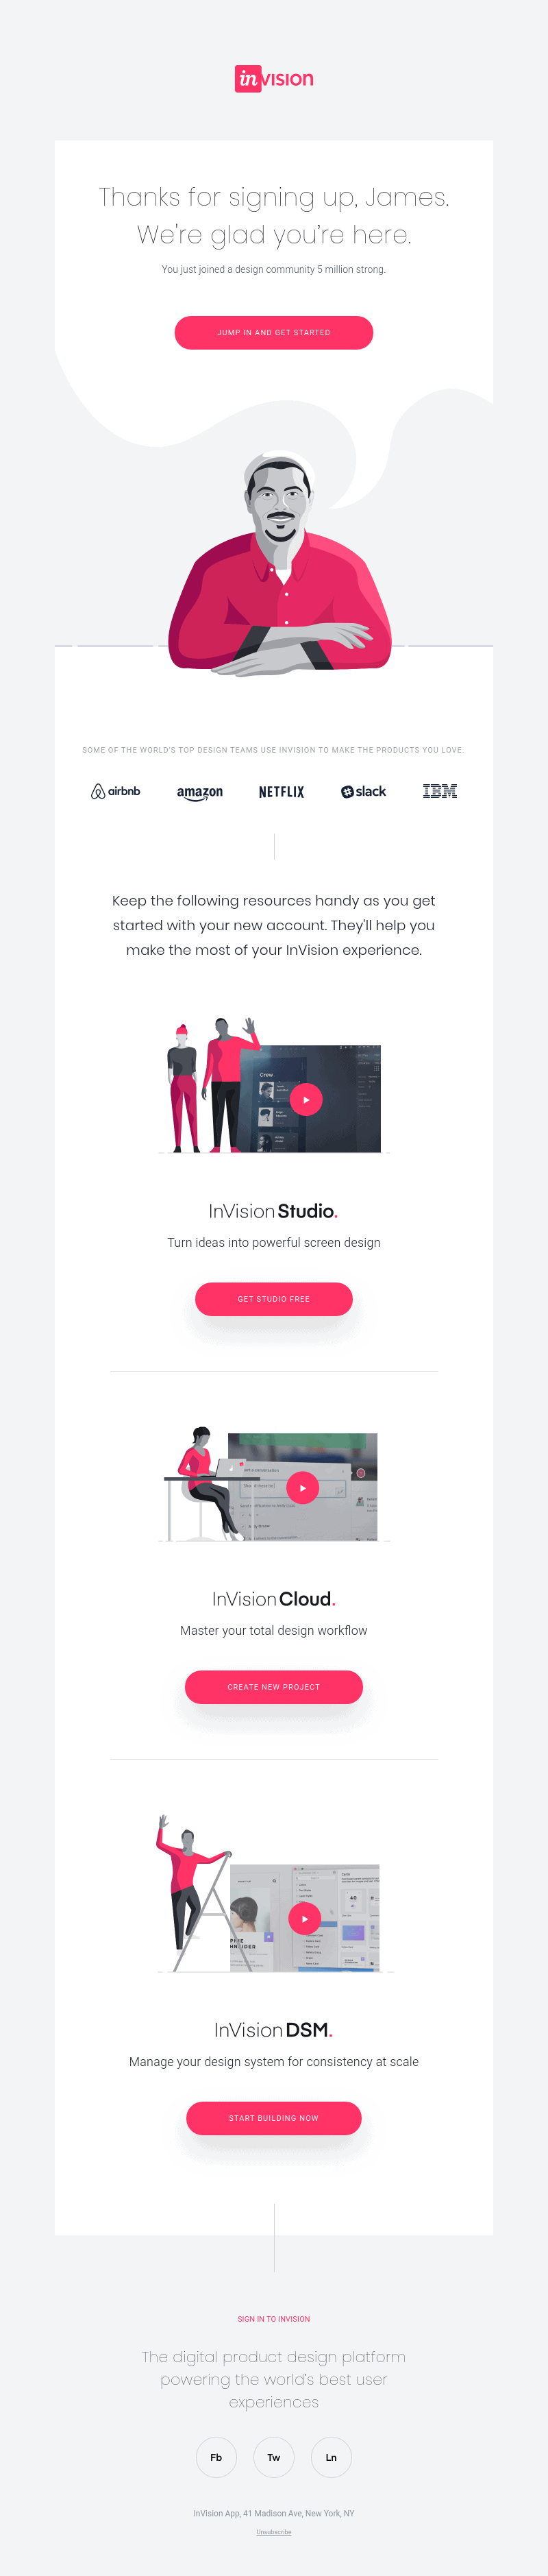 Invision Welcome message